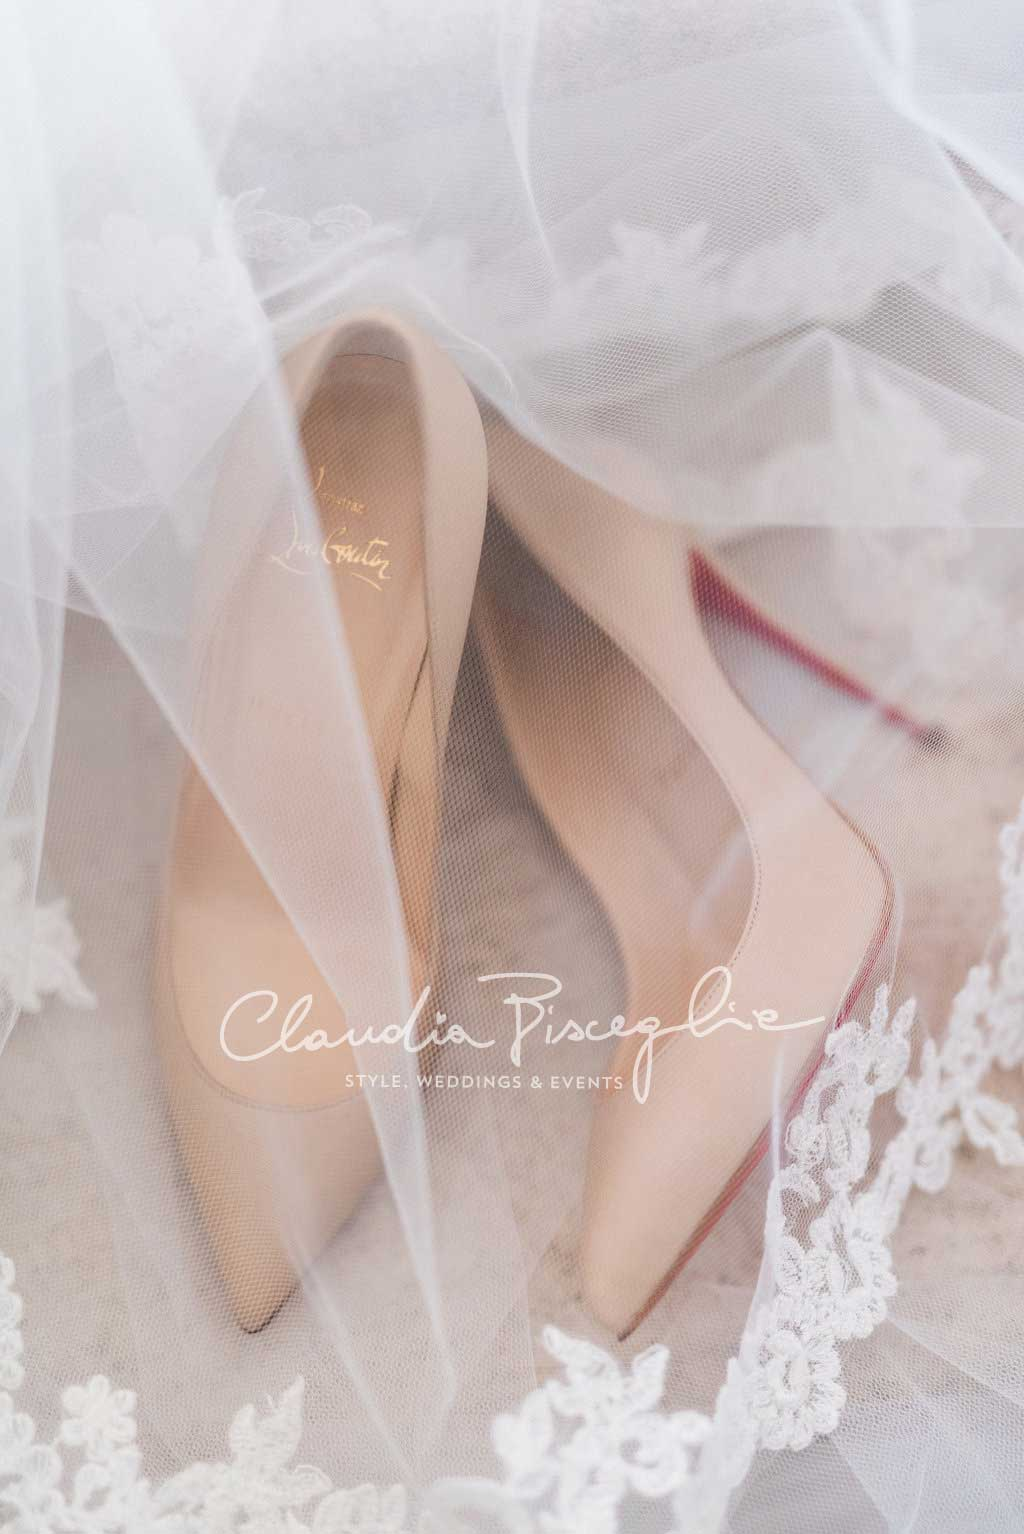 C-shoes-bridalveil-wedding-romantic-claudiaBisceglie-weddingplanner